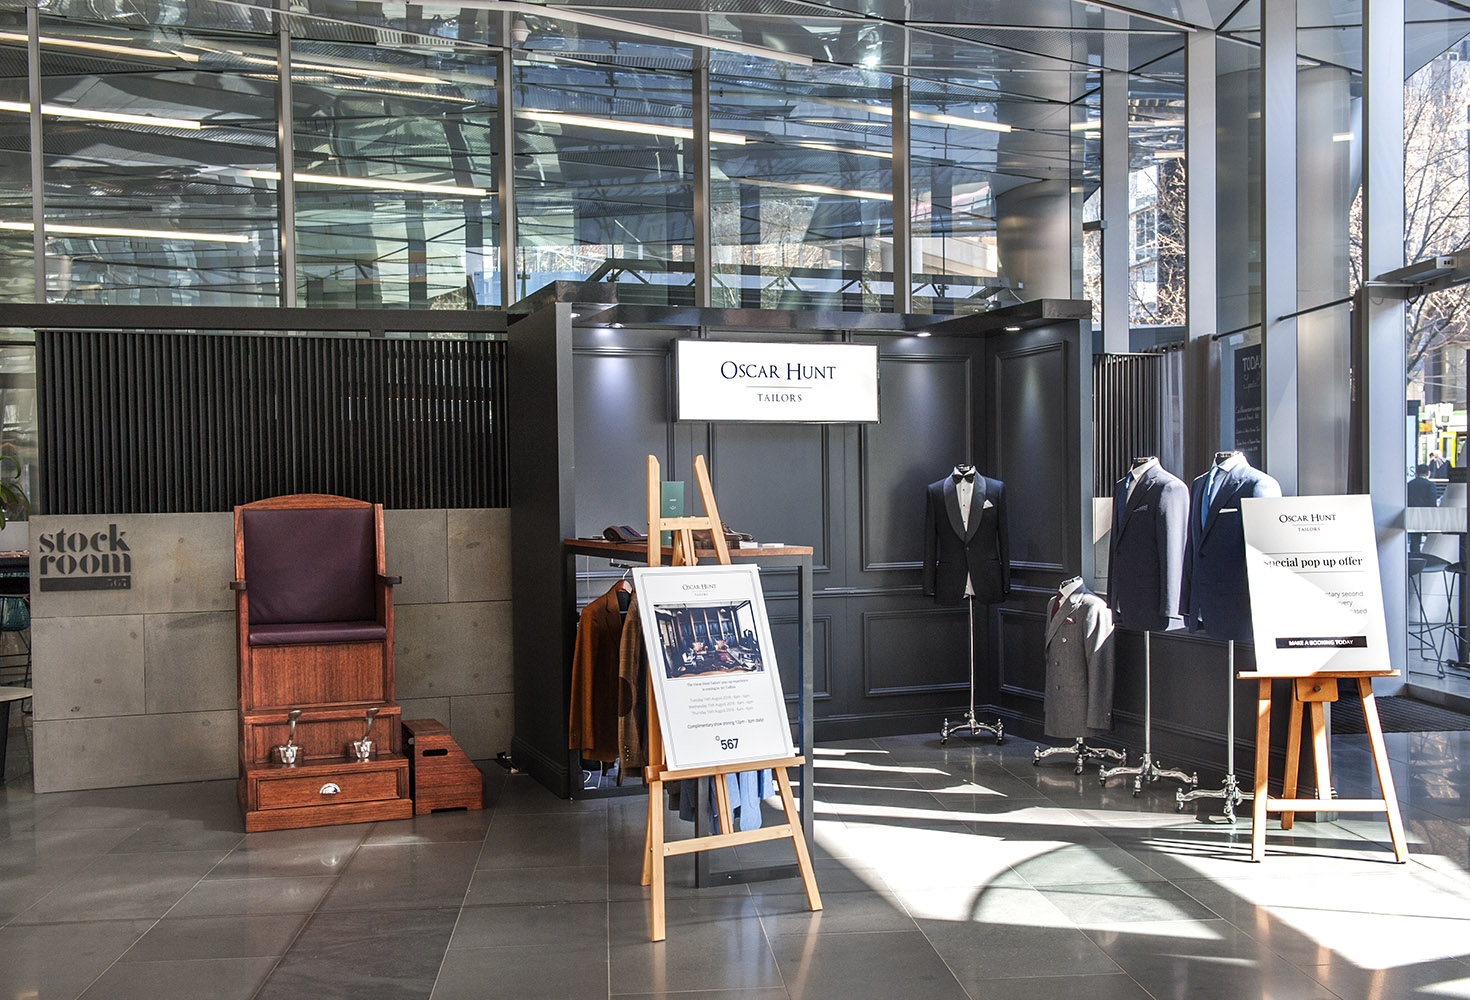 Oscar Hunt Tailors pop-up at 567 Collins Street Melbourne